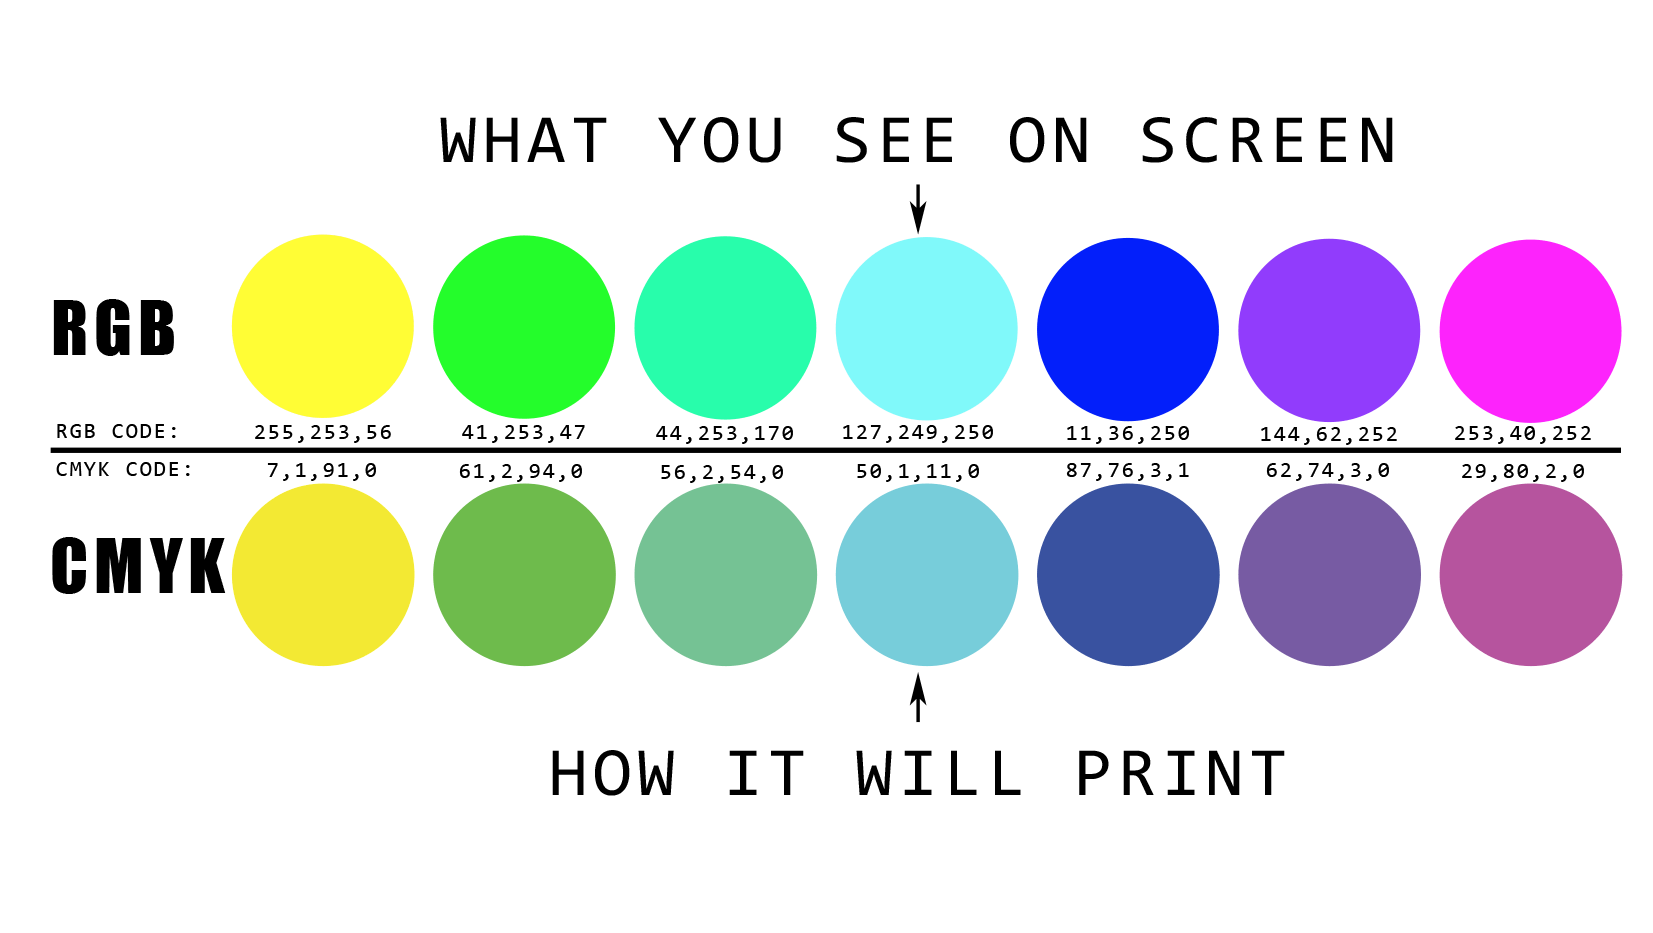 cmyk and rbg looks on screen versus when printed - sameday printing v2